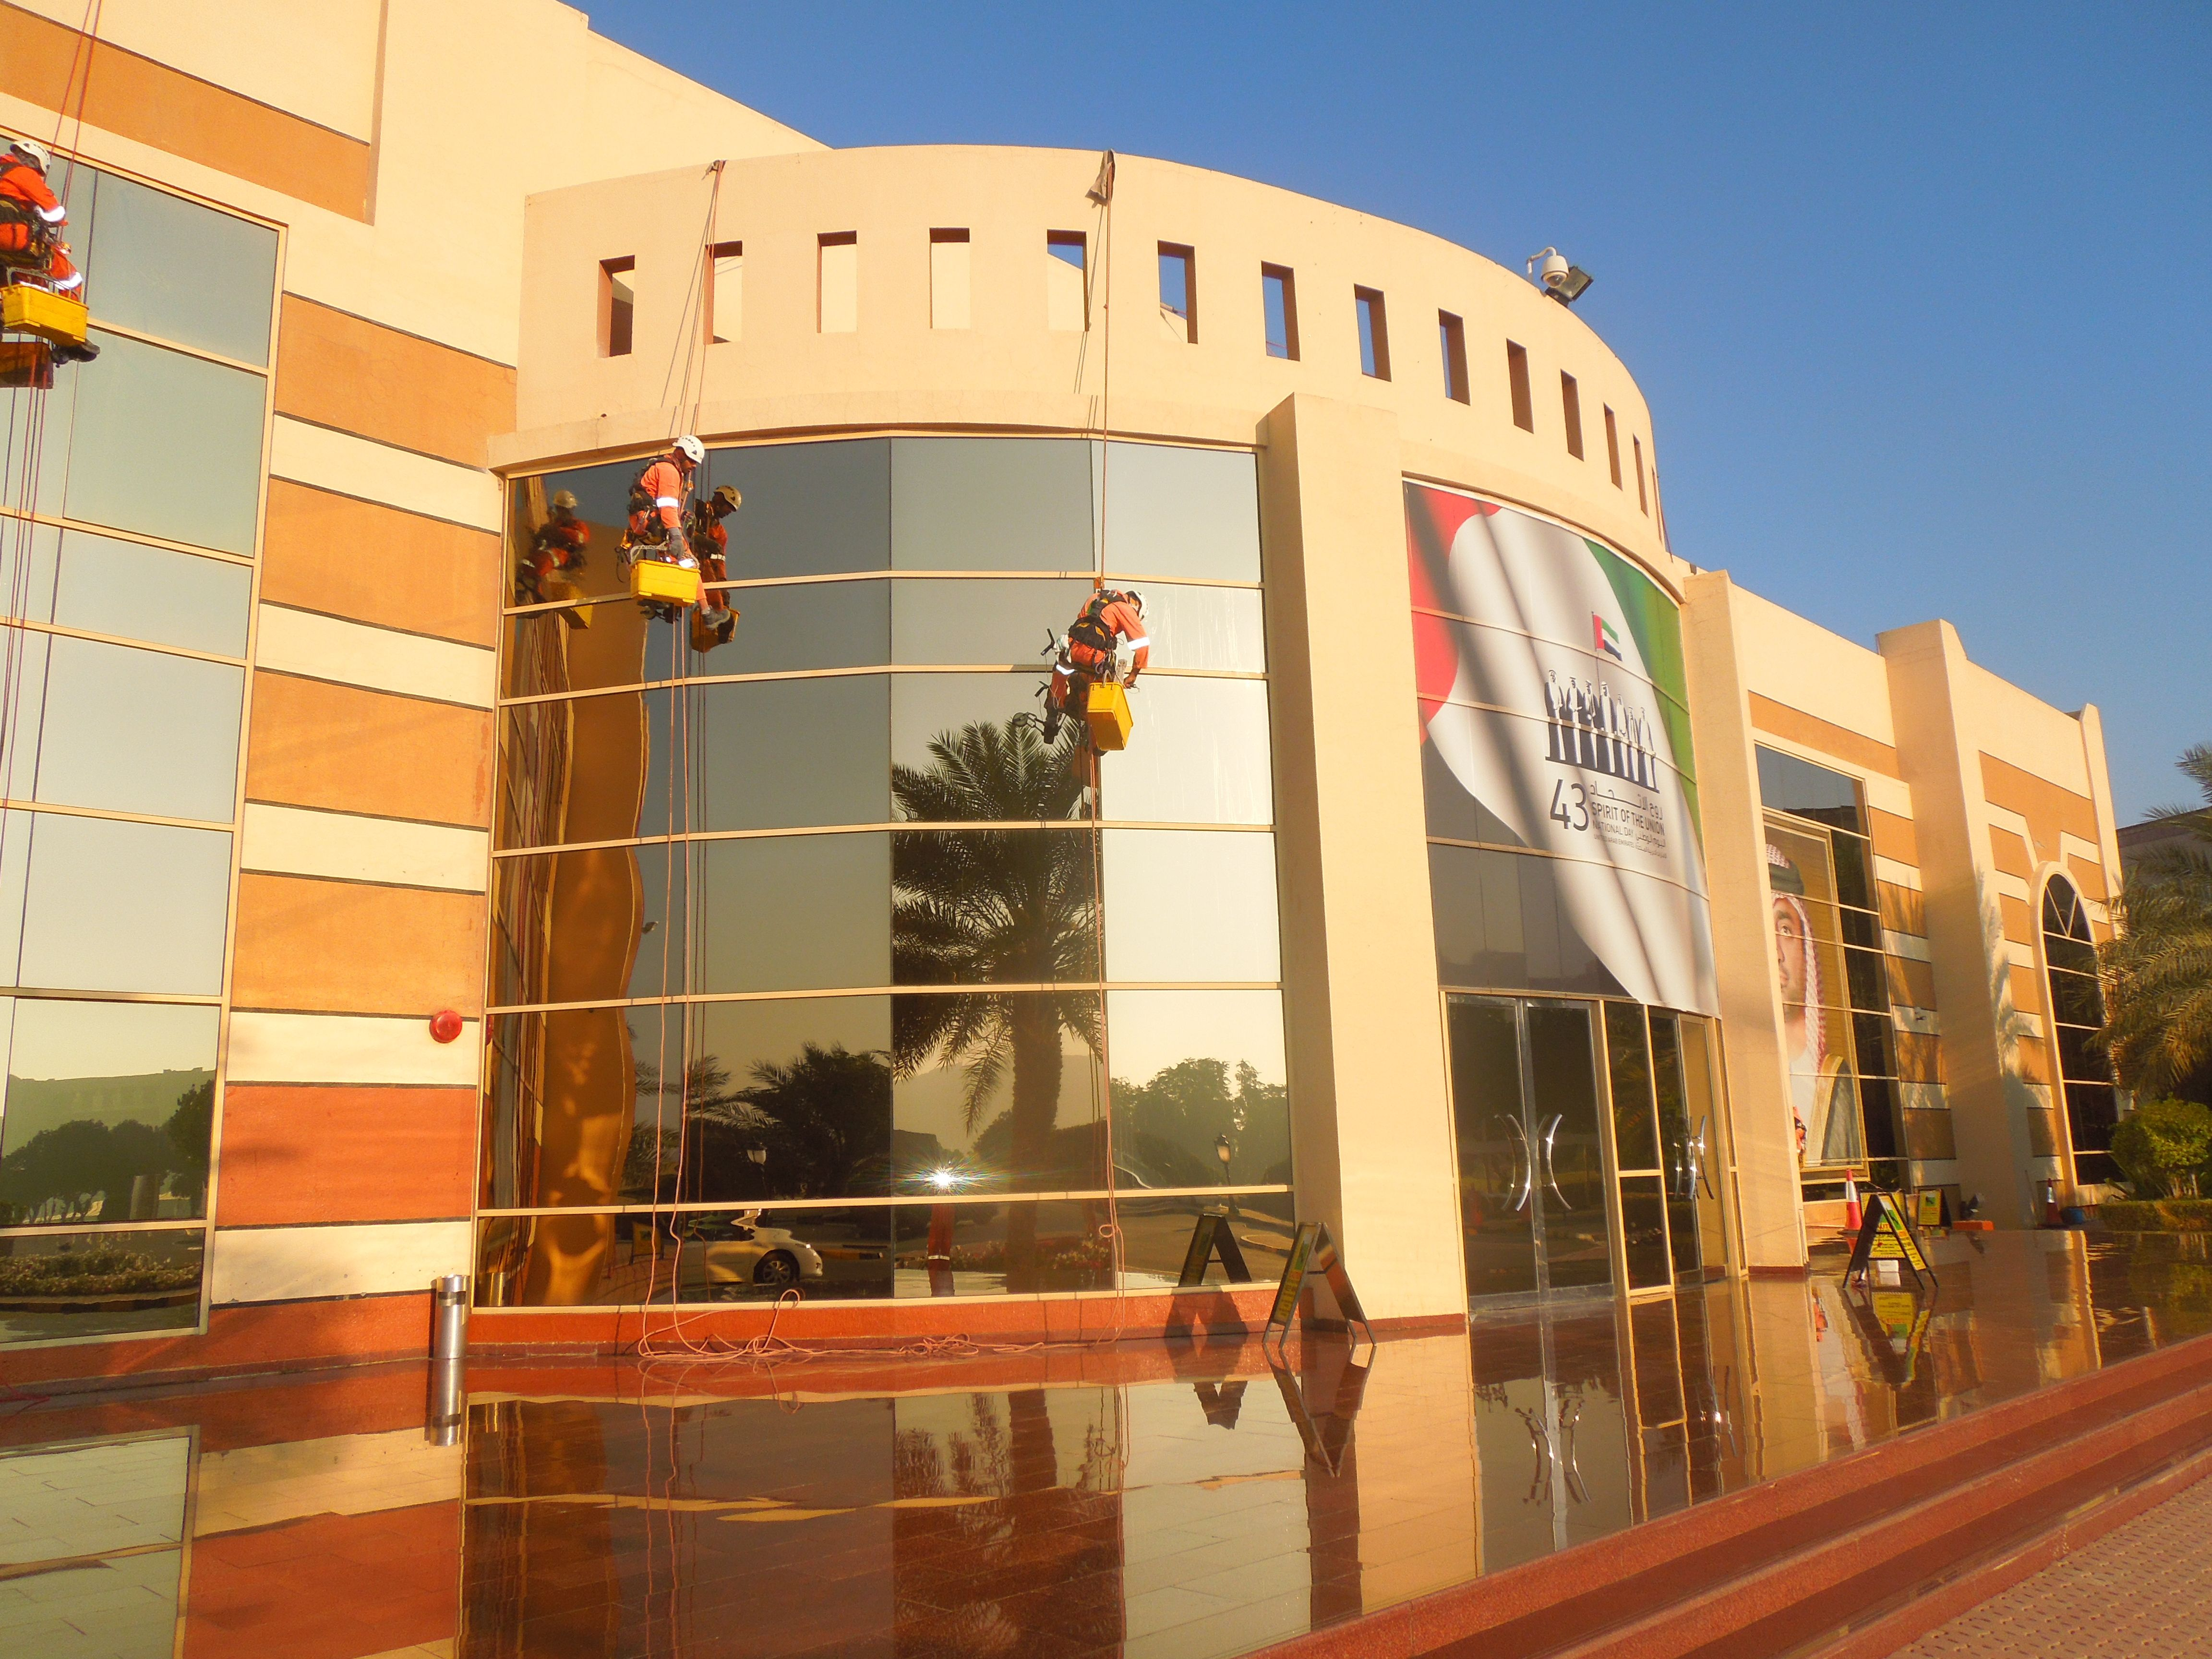 Window cleaning services at Ajman University of Science and